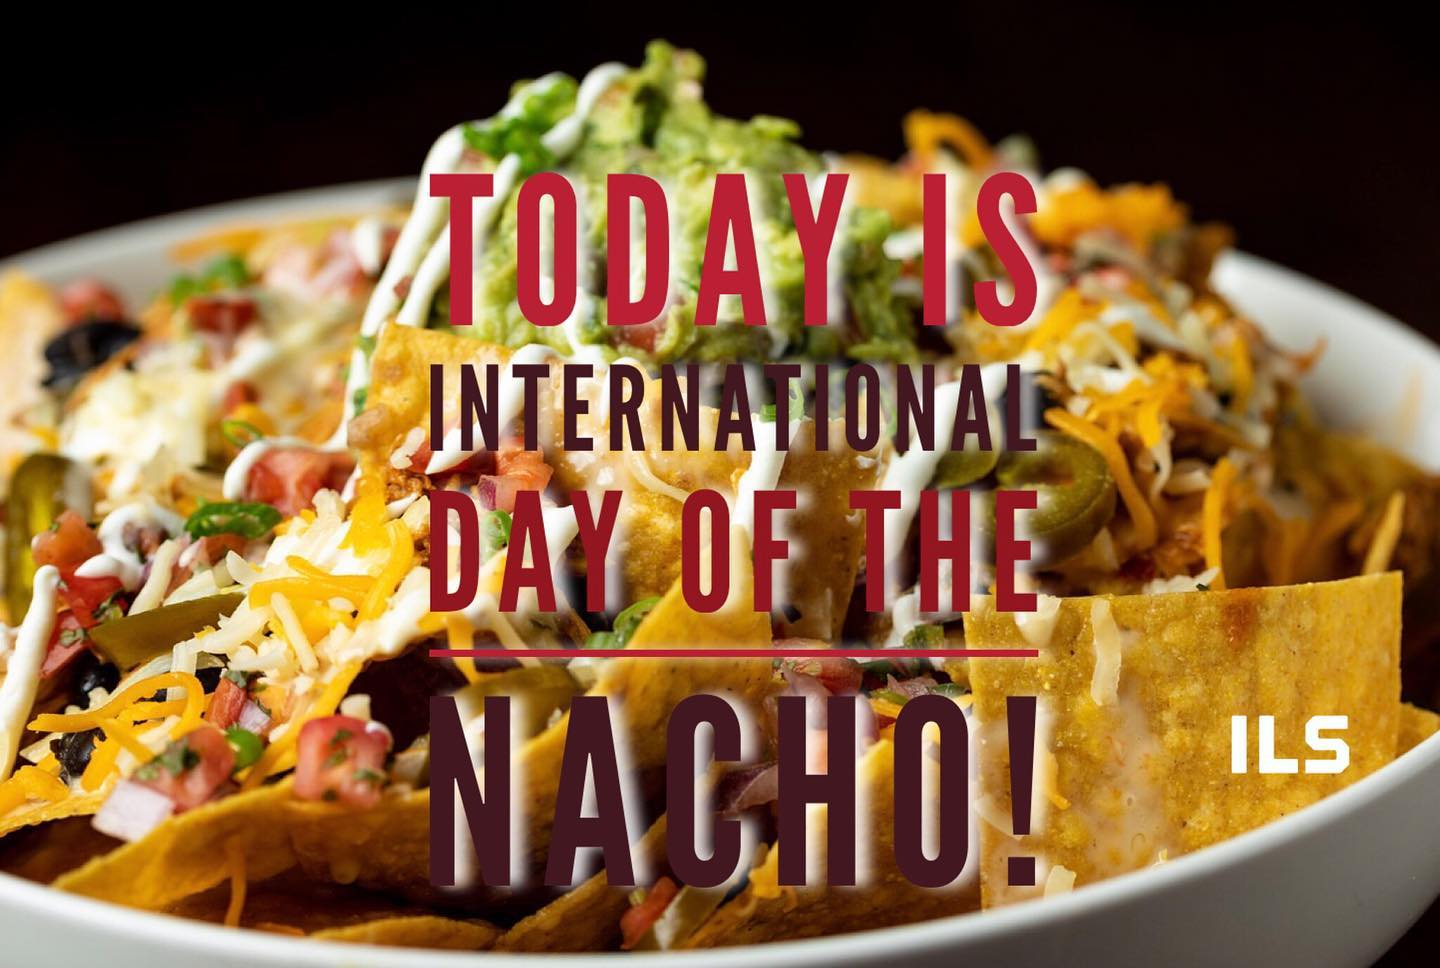 International Day of the Nacho Wishes Awesome Picture